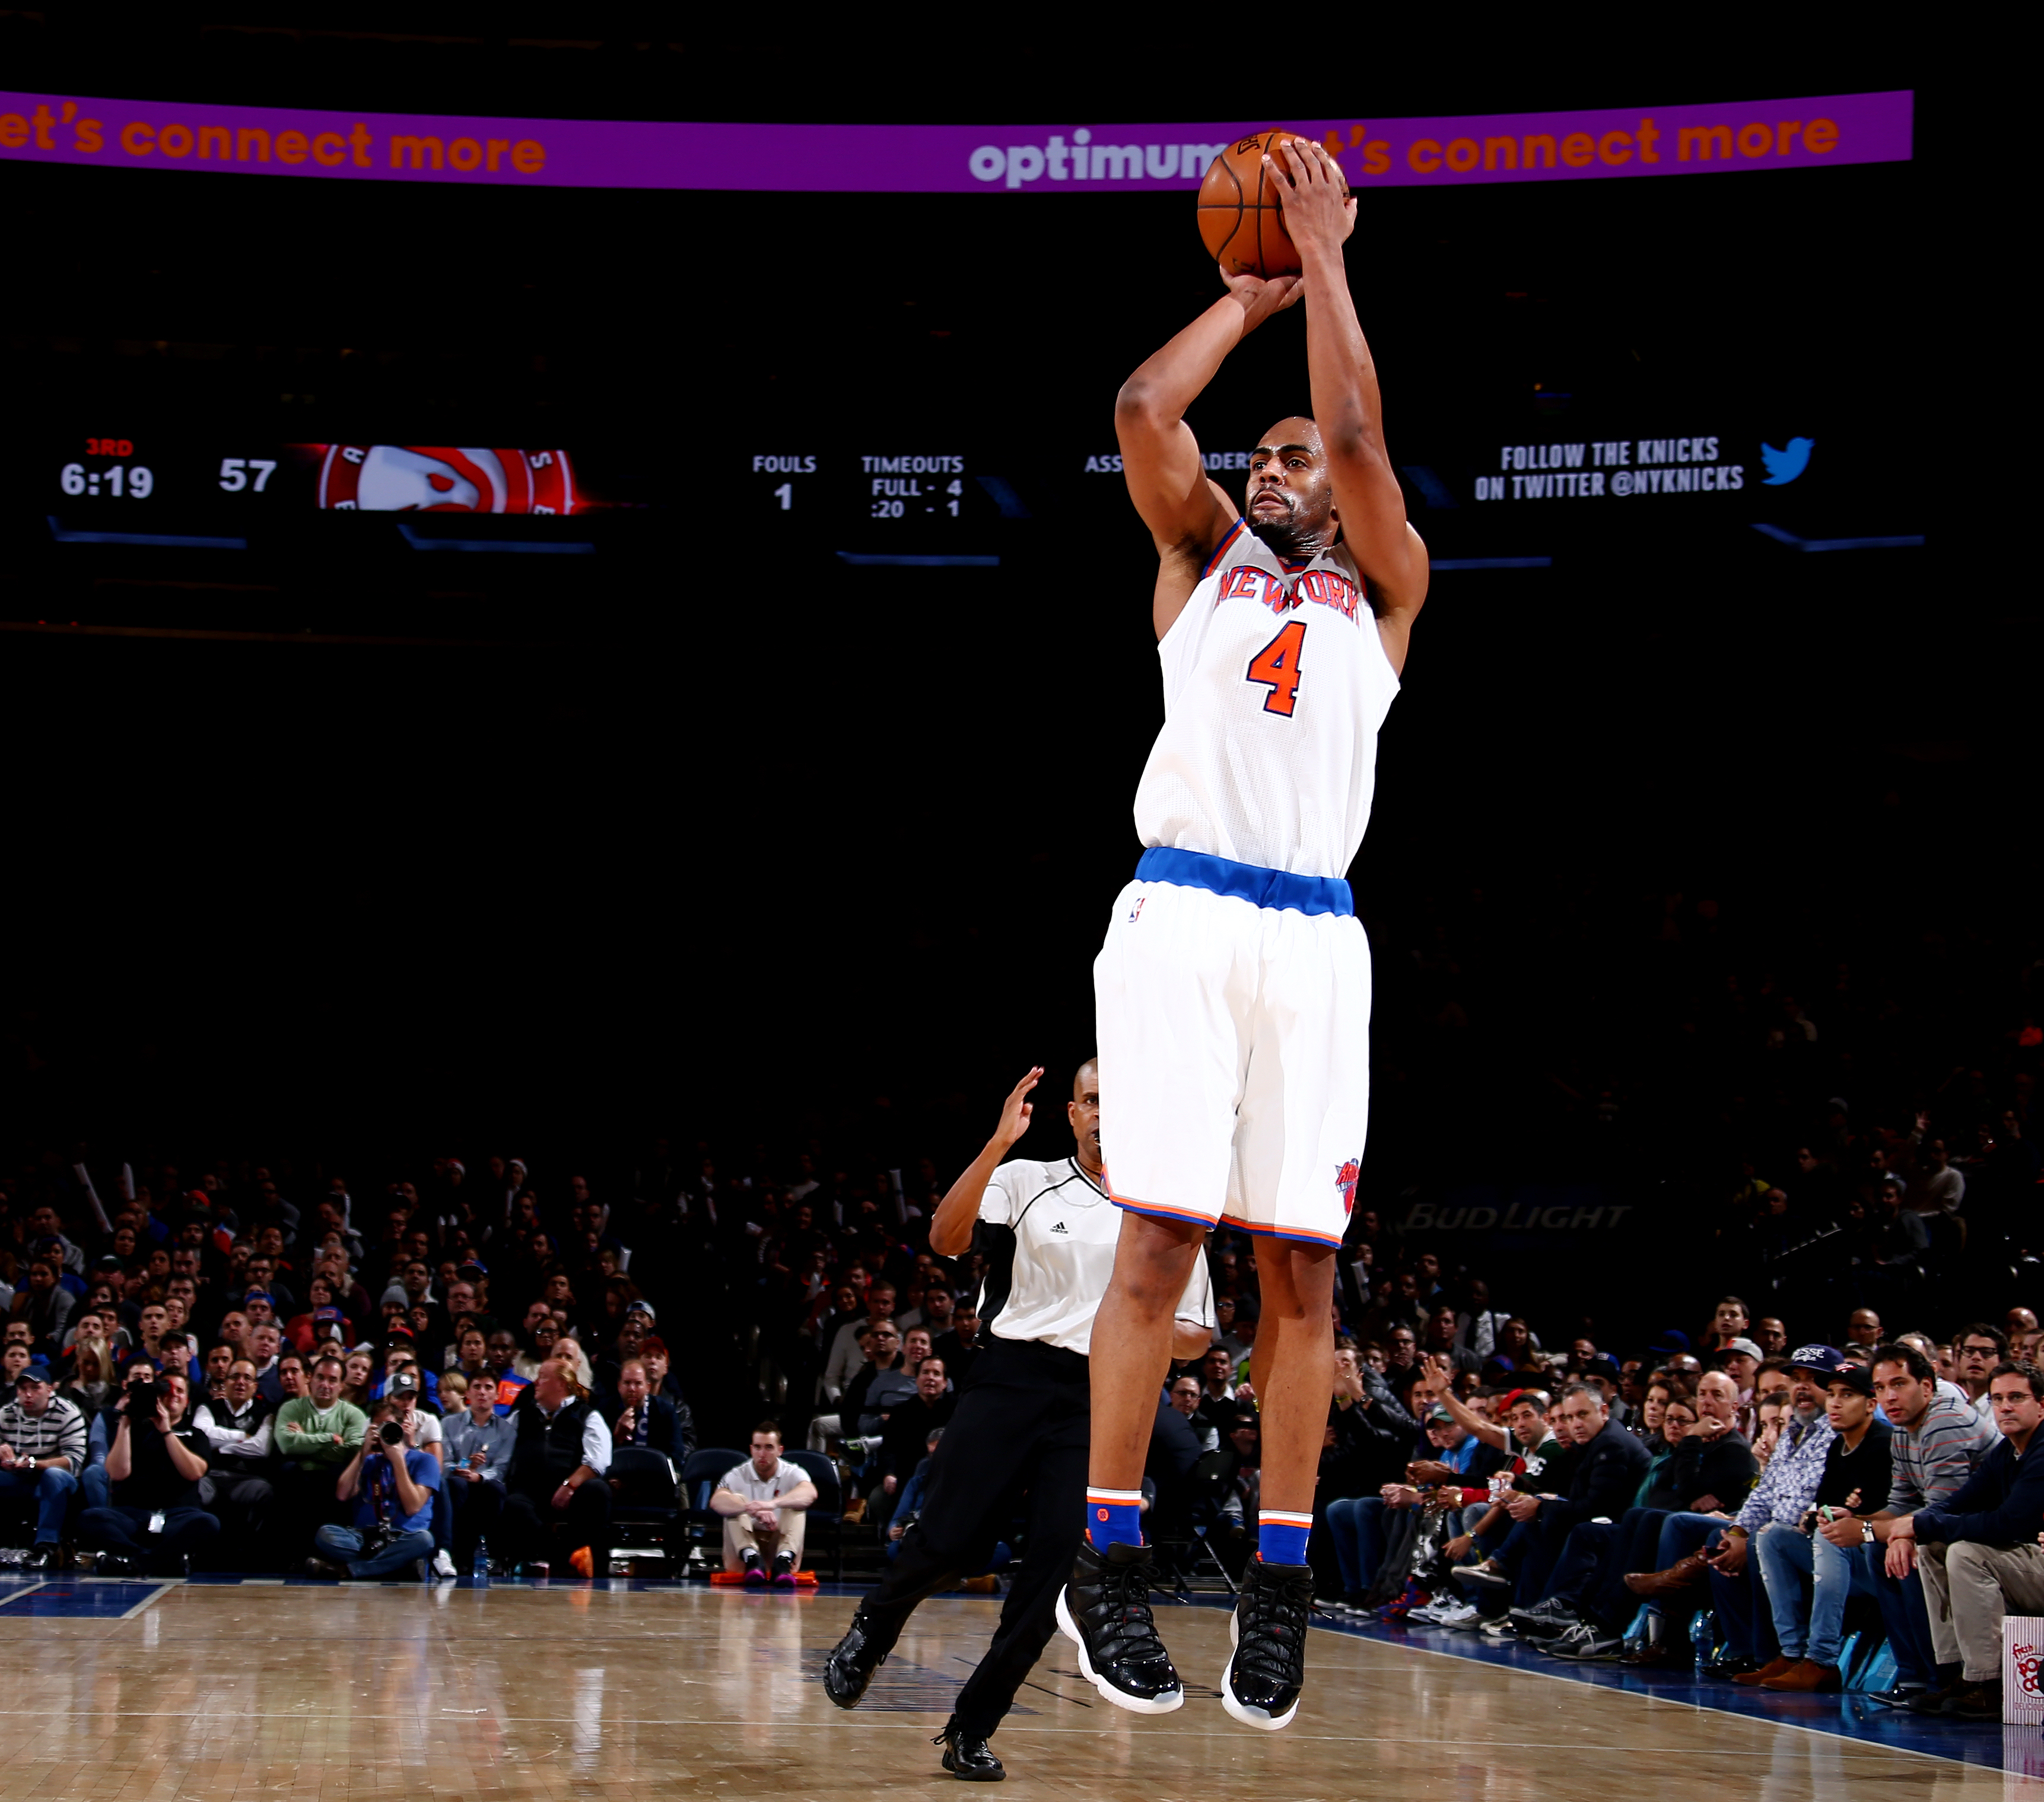 NEW YORK, NY - JANUARY 3: Arron Afflalo #4 of the New York Knicks shoots against the Atlanta Hawks during the game on January 3, 2016 at Madison Square Garden in New York, New York. (Photo by Nathaniel S. Butler/NBAE via Getty Images)